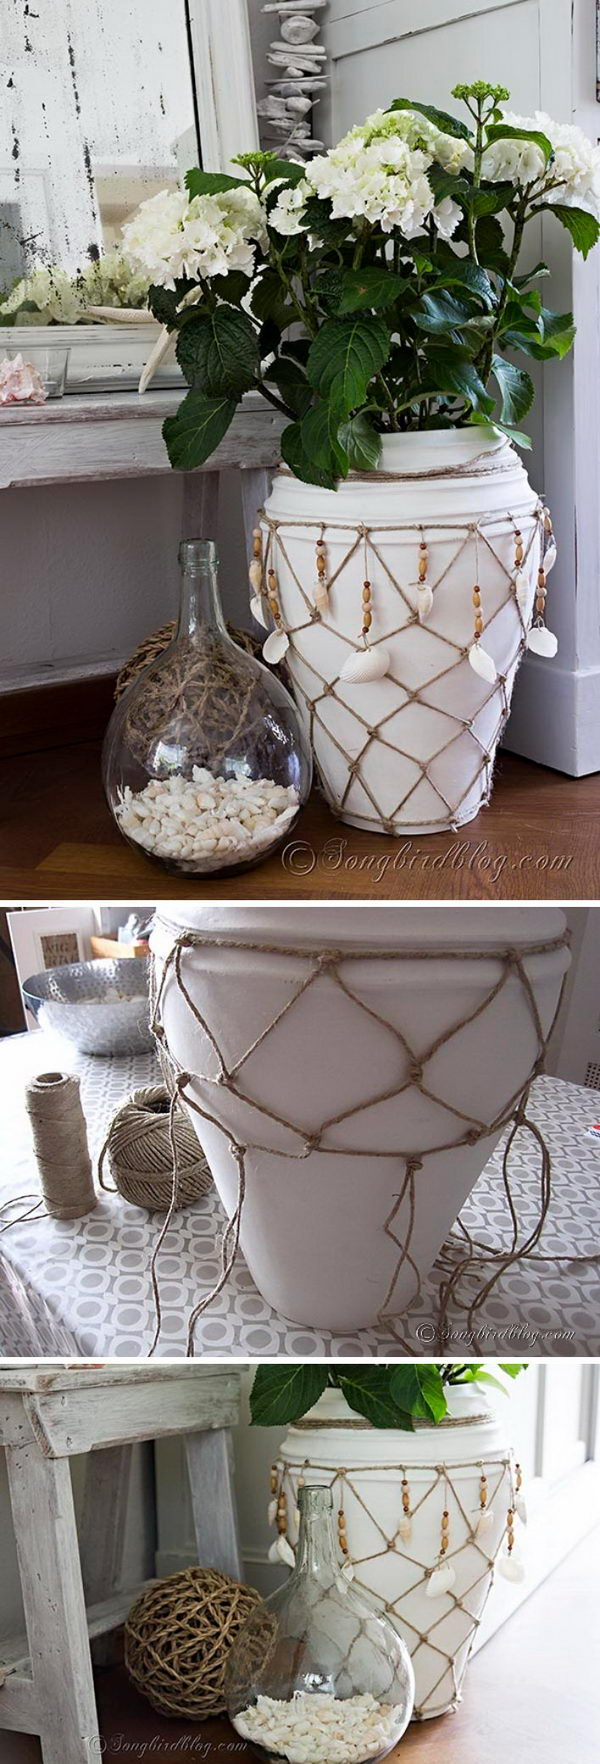 Nautical Fish Net Vase.